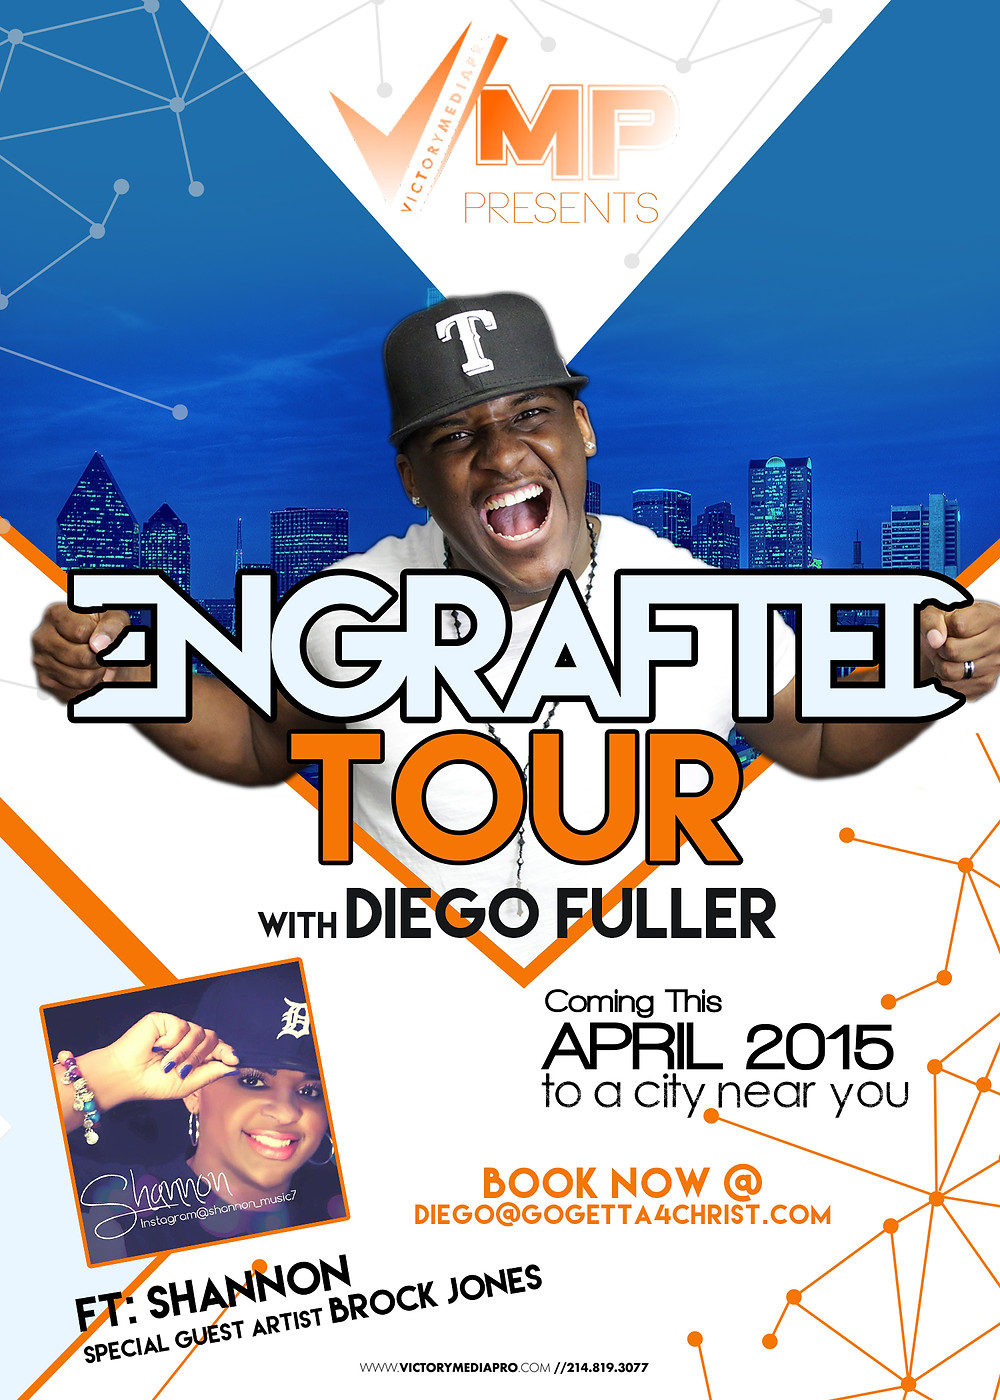 engrafted tour 2015 flyer.jpg